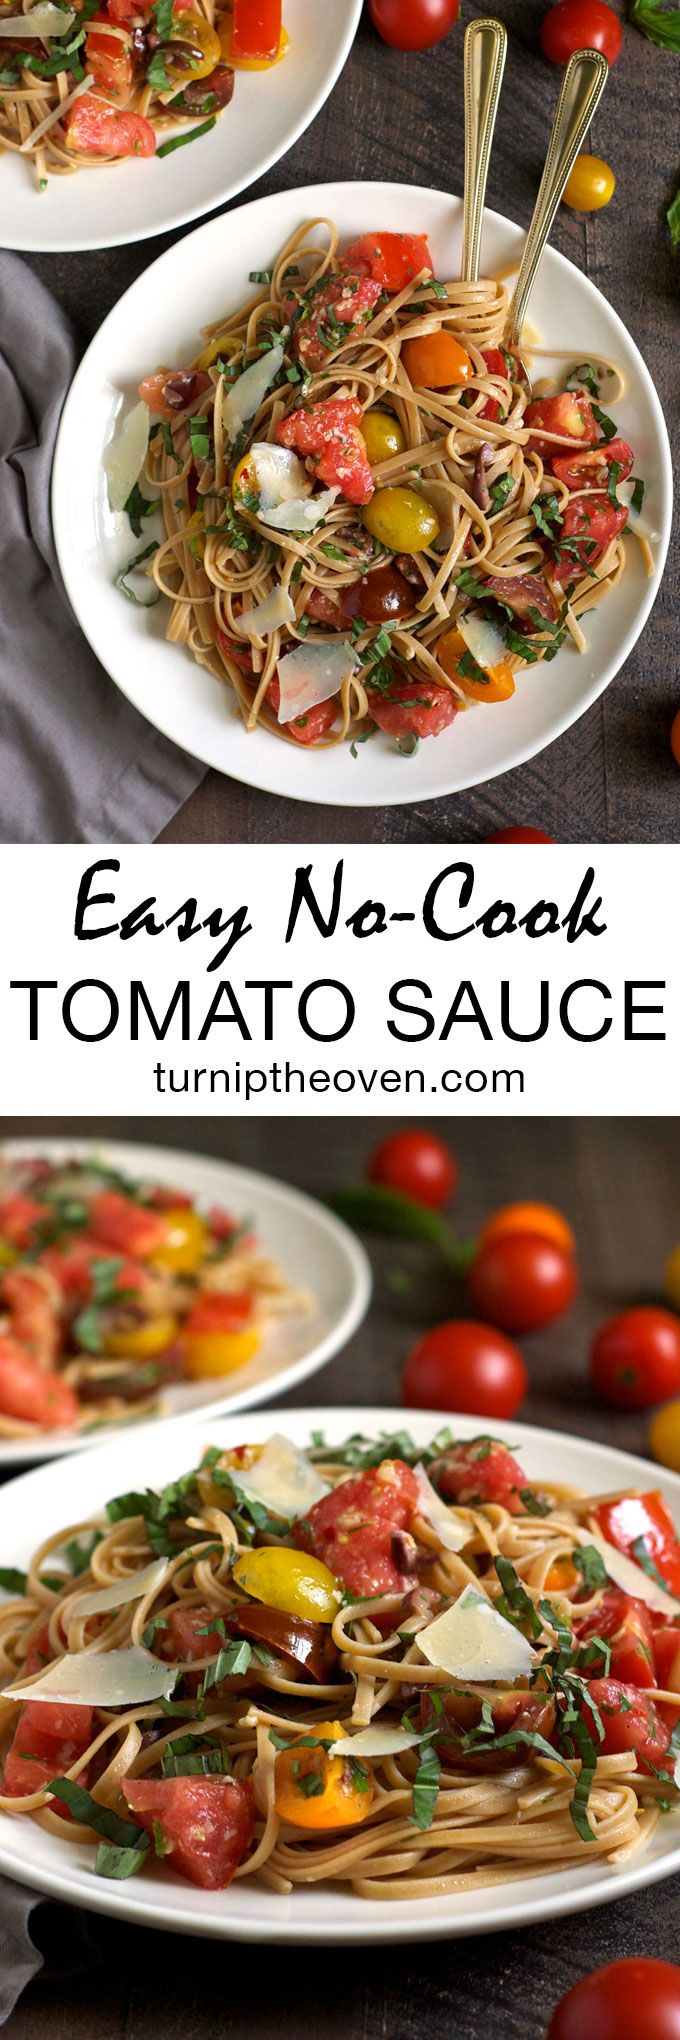 86 best Homemade Condiments & Sauces images on Pinterest ...